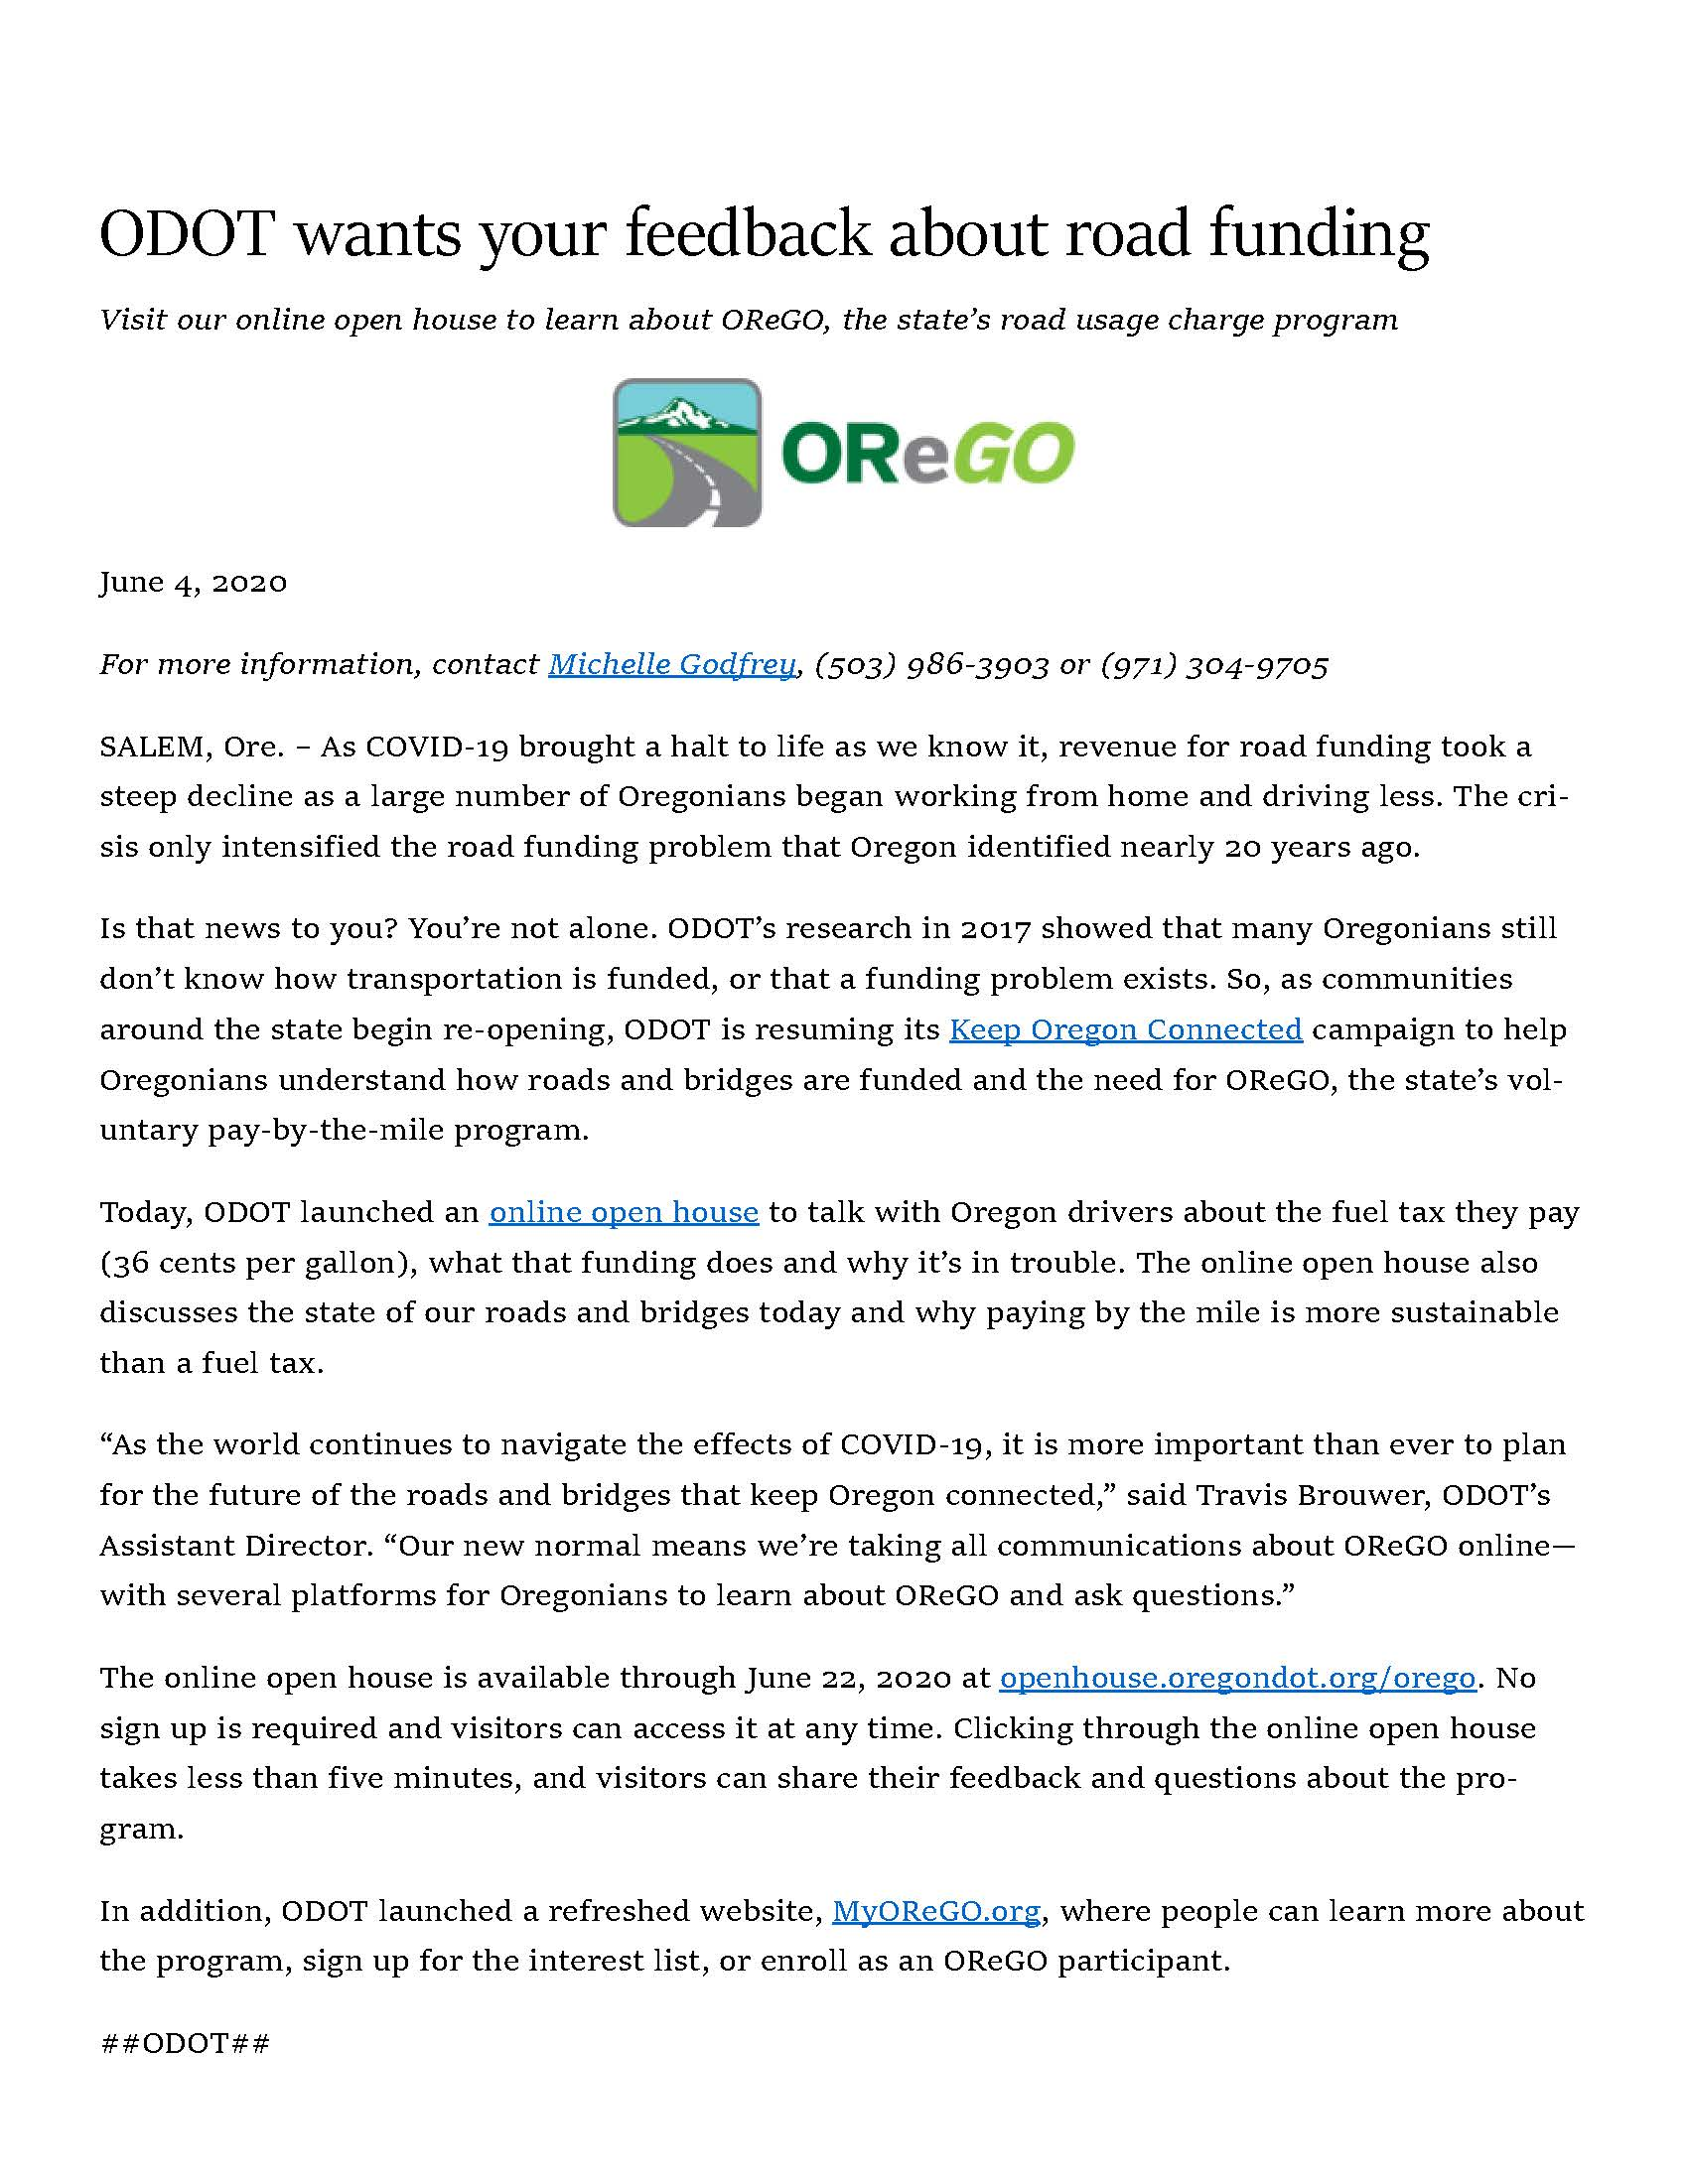 ODOT feedback re  road funding